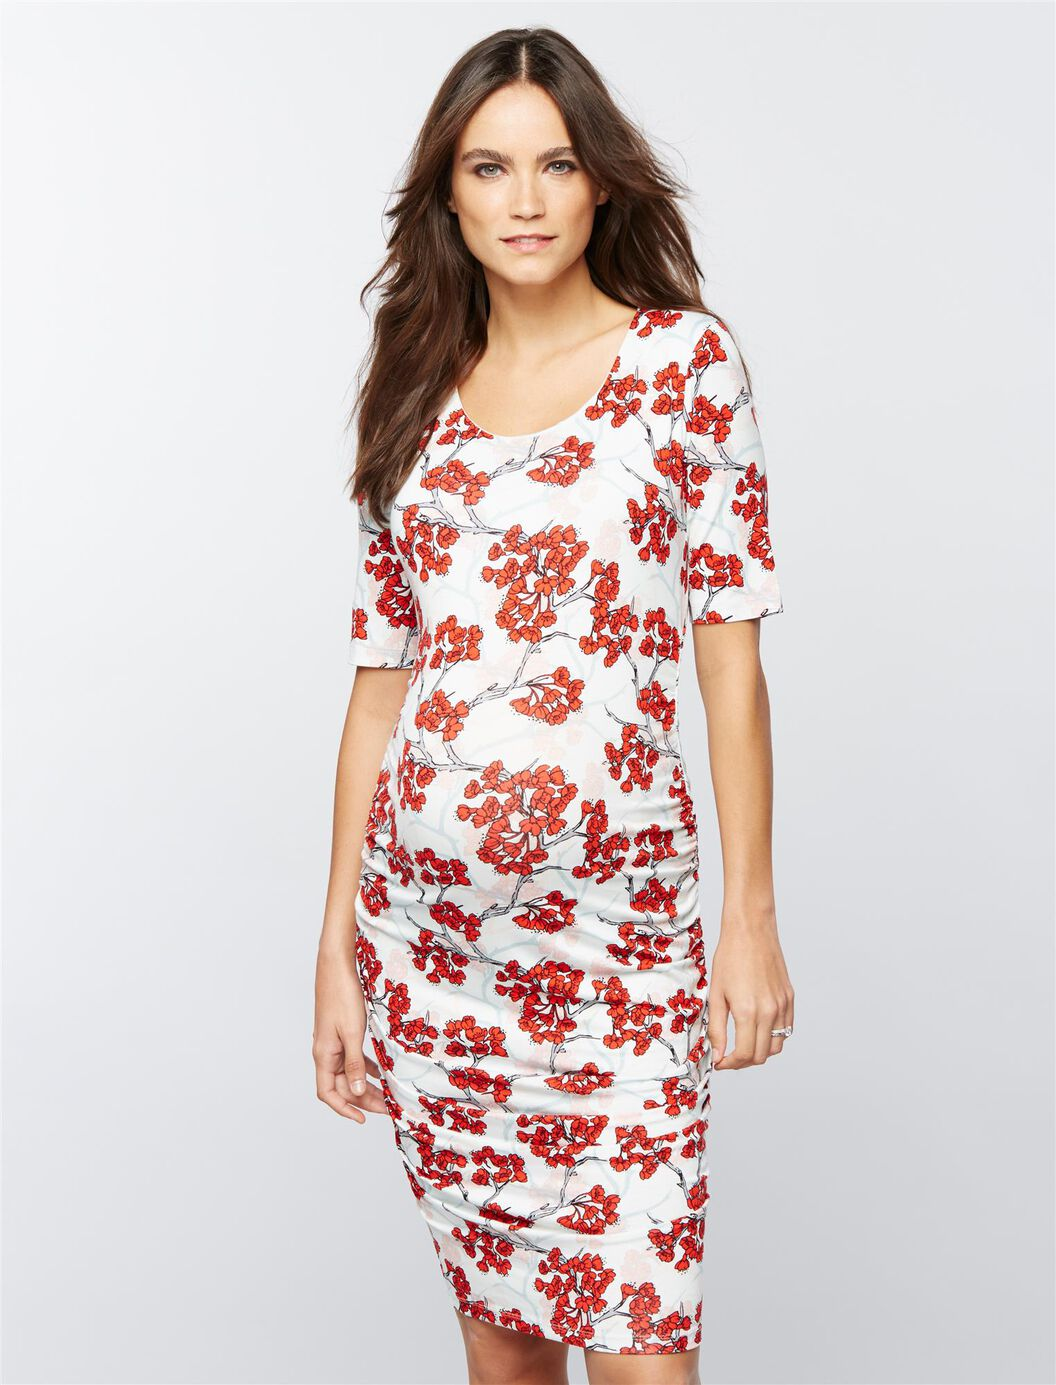 Ruched maternity dress cherry blossom a pea in the pod maternity ruched maternity dress cherry blossom cherry blossom ombrellifo Gallery